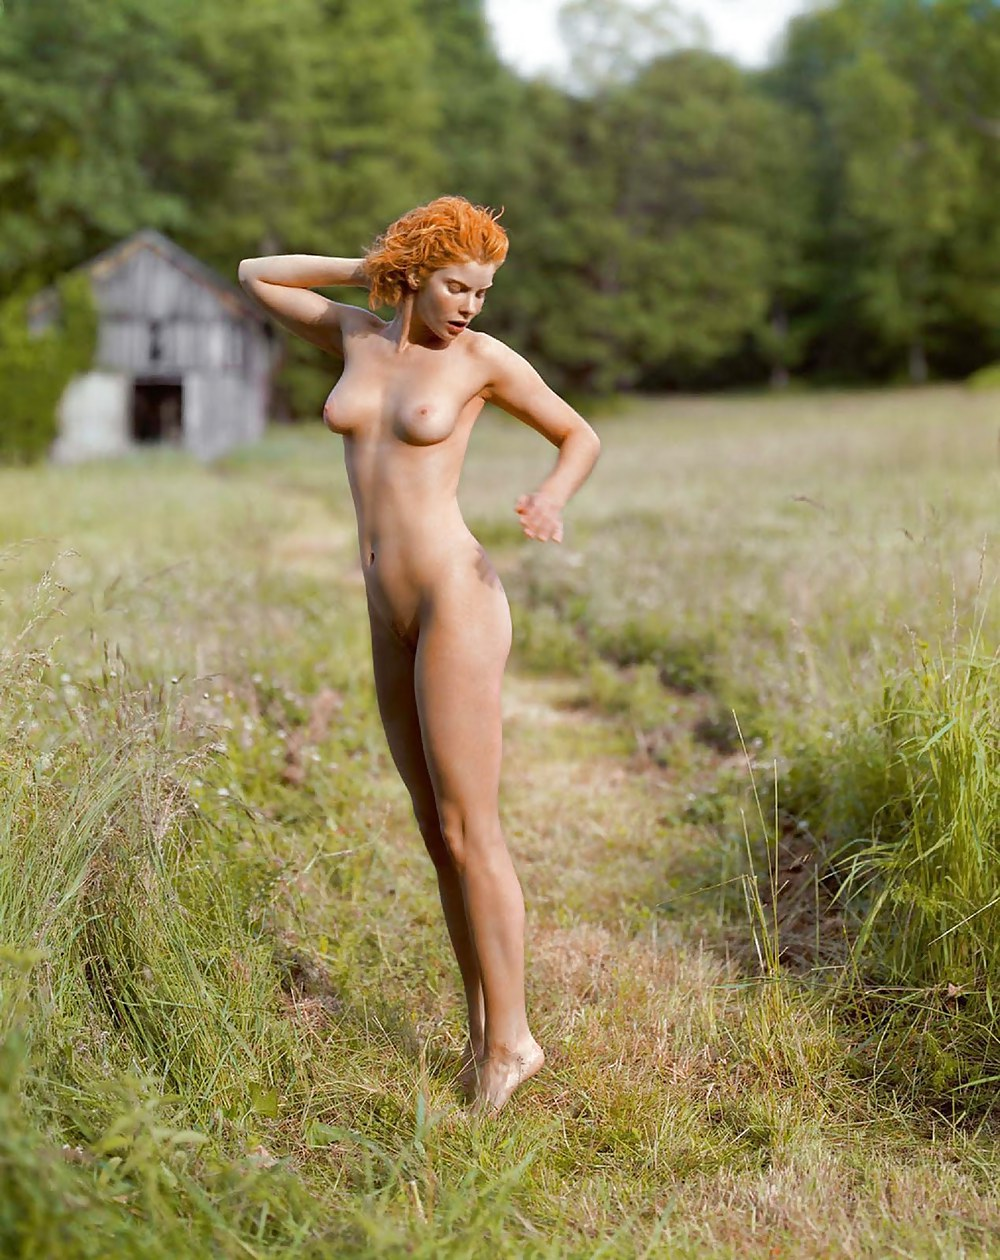 Natural redhead models in flat shoes while going naked out in public